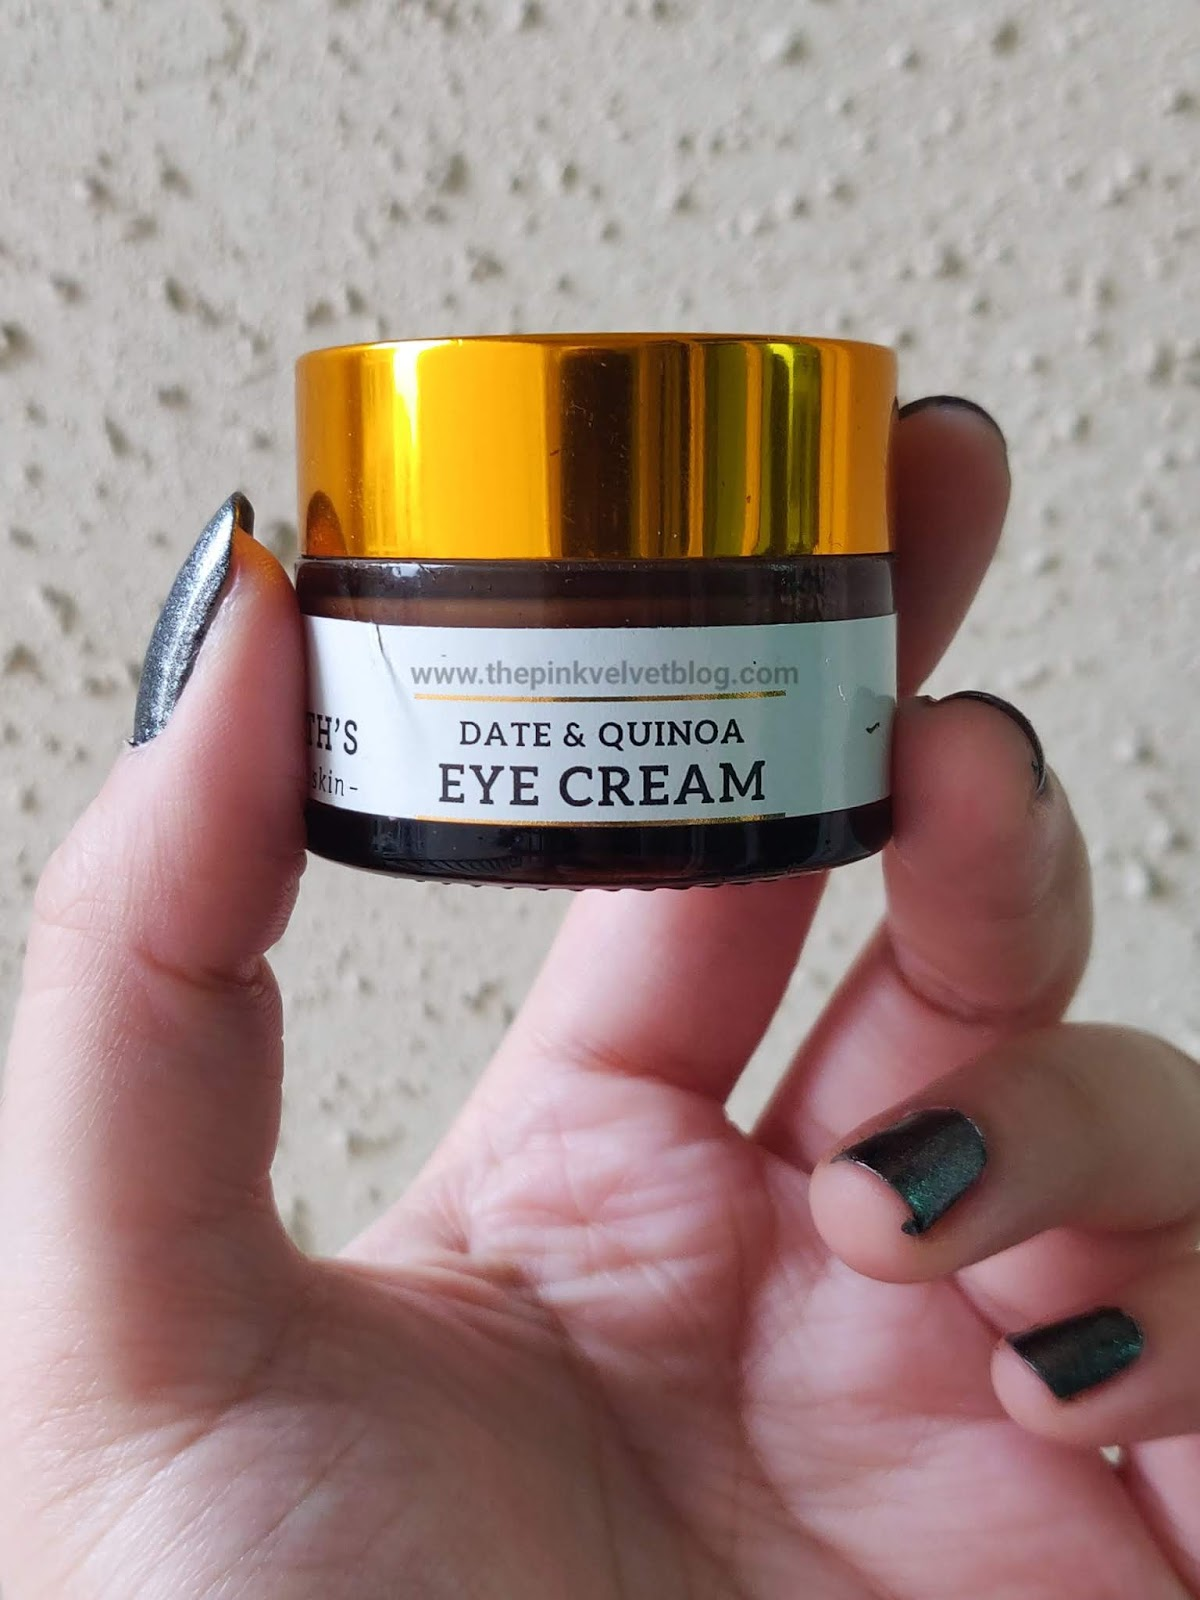 Dr.Sheth's Date and Quinoa Eye Cream - Review